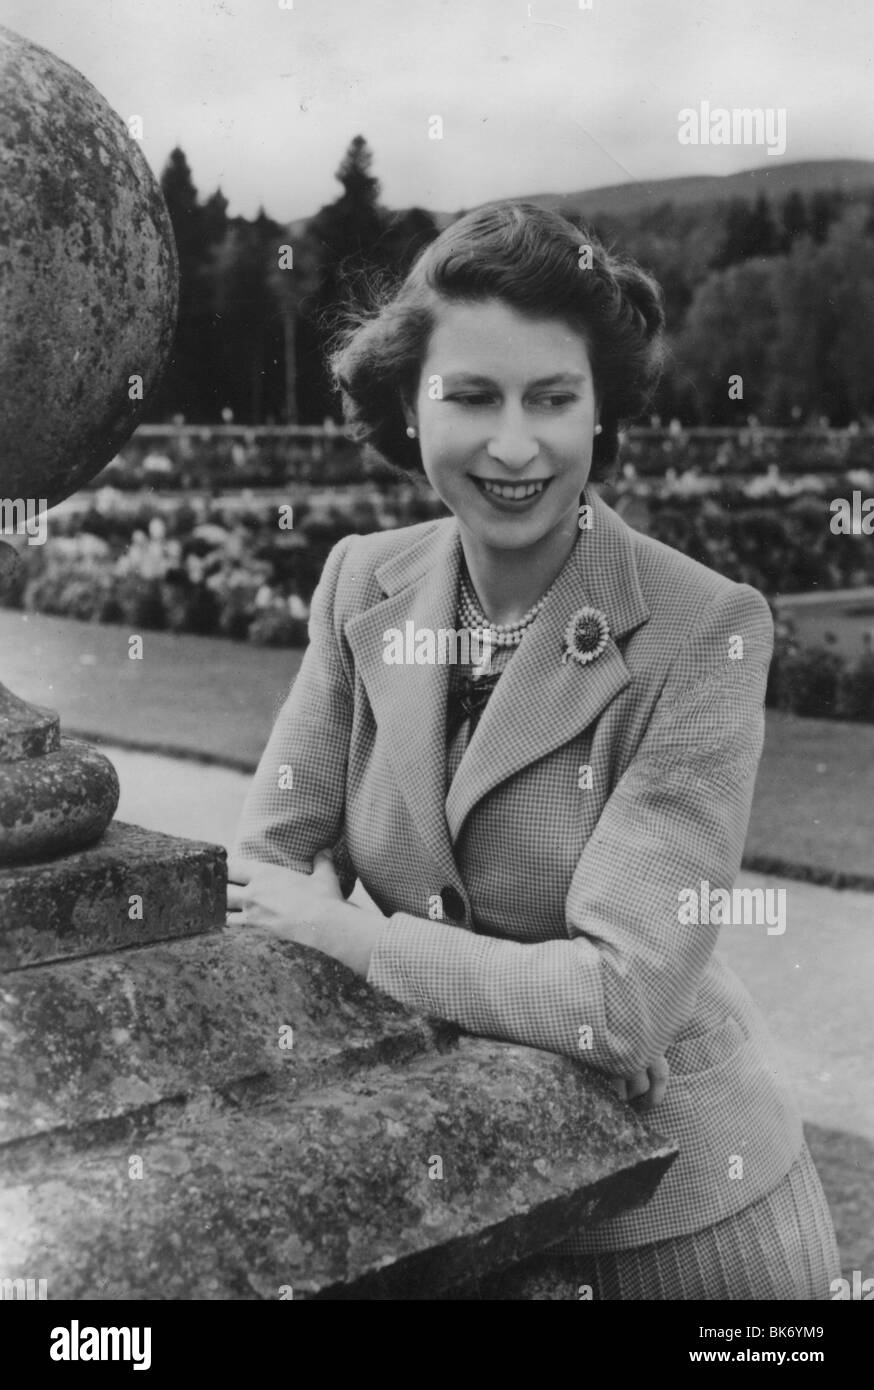 QUEEN ELIZABETH  II IN 1949 - Stock Image